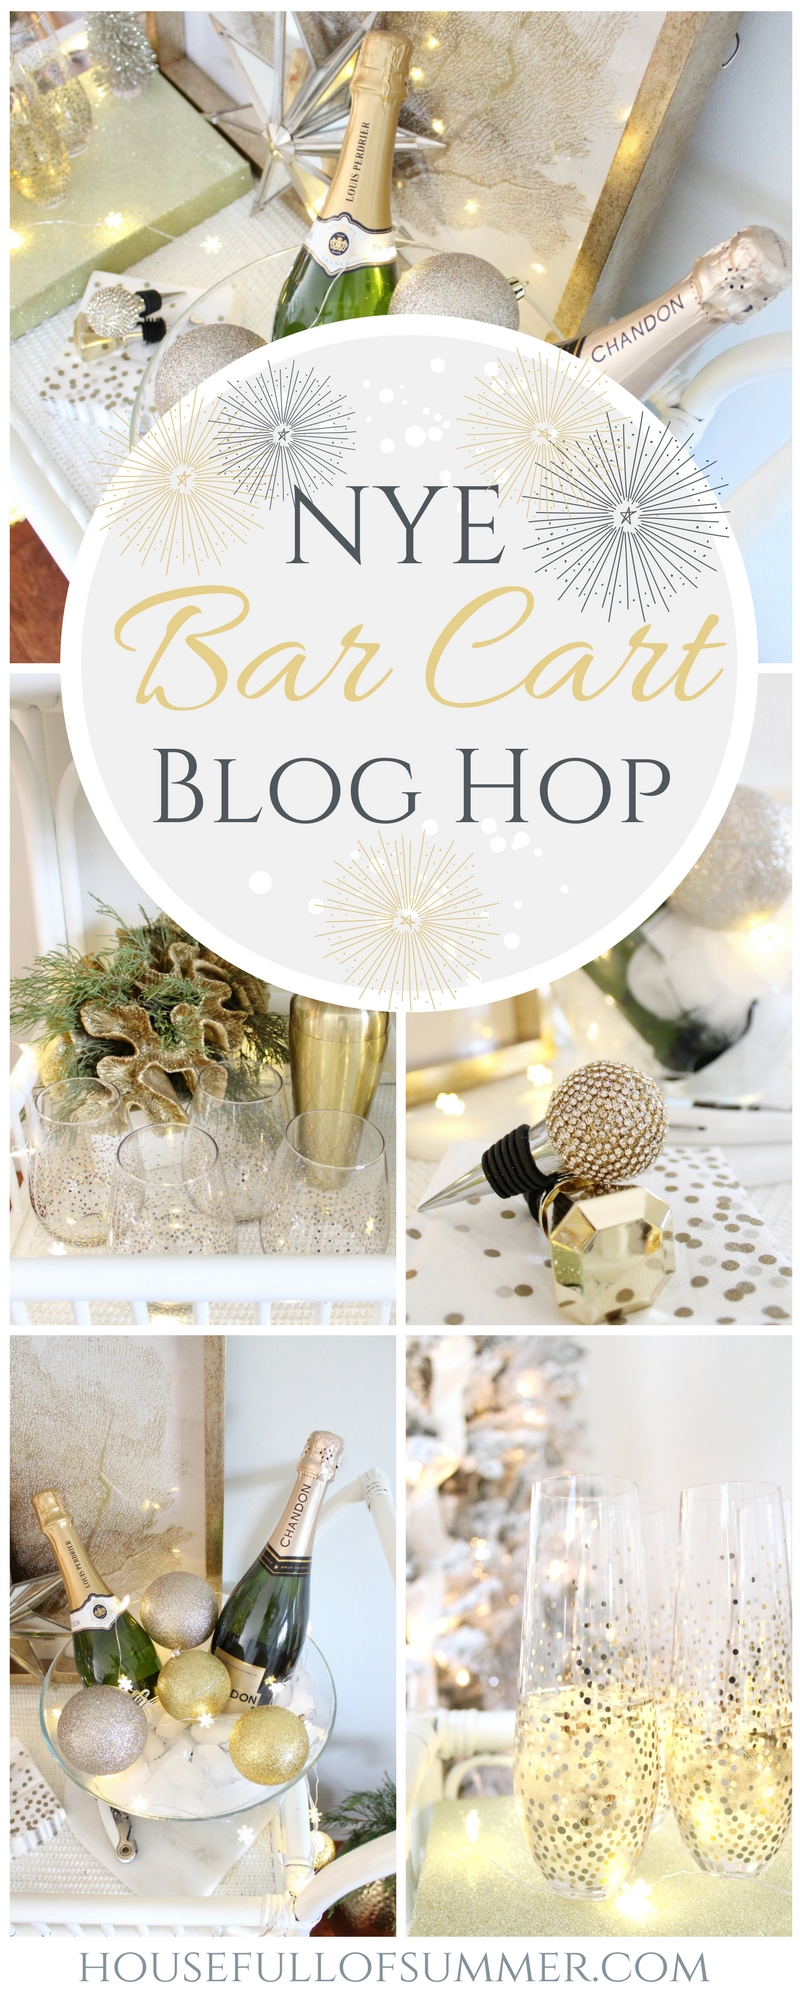 NYE Bar Cart Blog Hop | House Full of Summer blog - NYE decor with leftover Christmas decor, DIY, decor on a budget, New Year's Eve bar cart styling ideas, New Year's Eve Party entertaining, gold and silver NYE, champagne bar cart, glam decor, coastal living